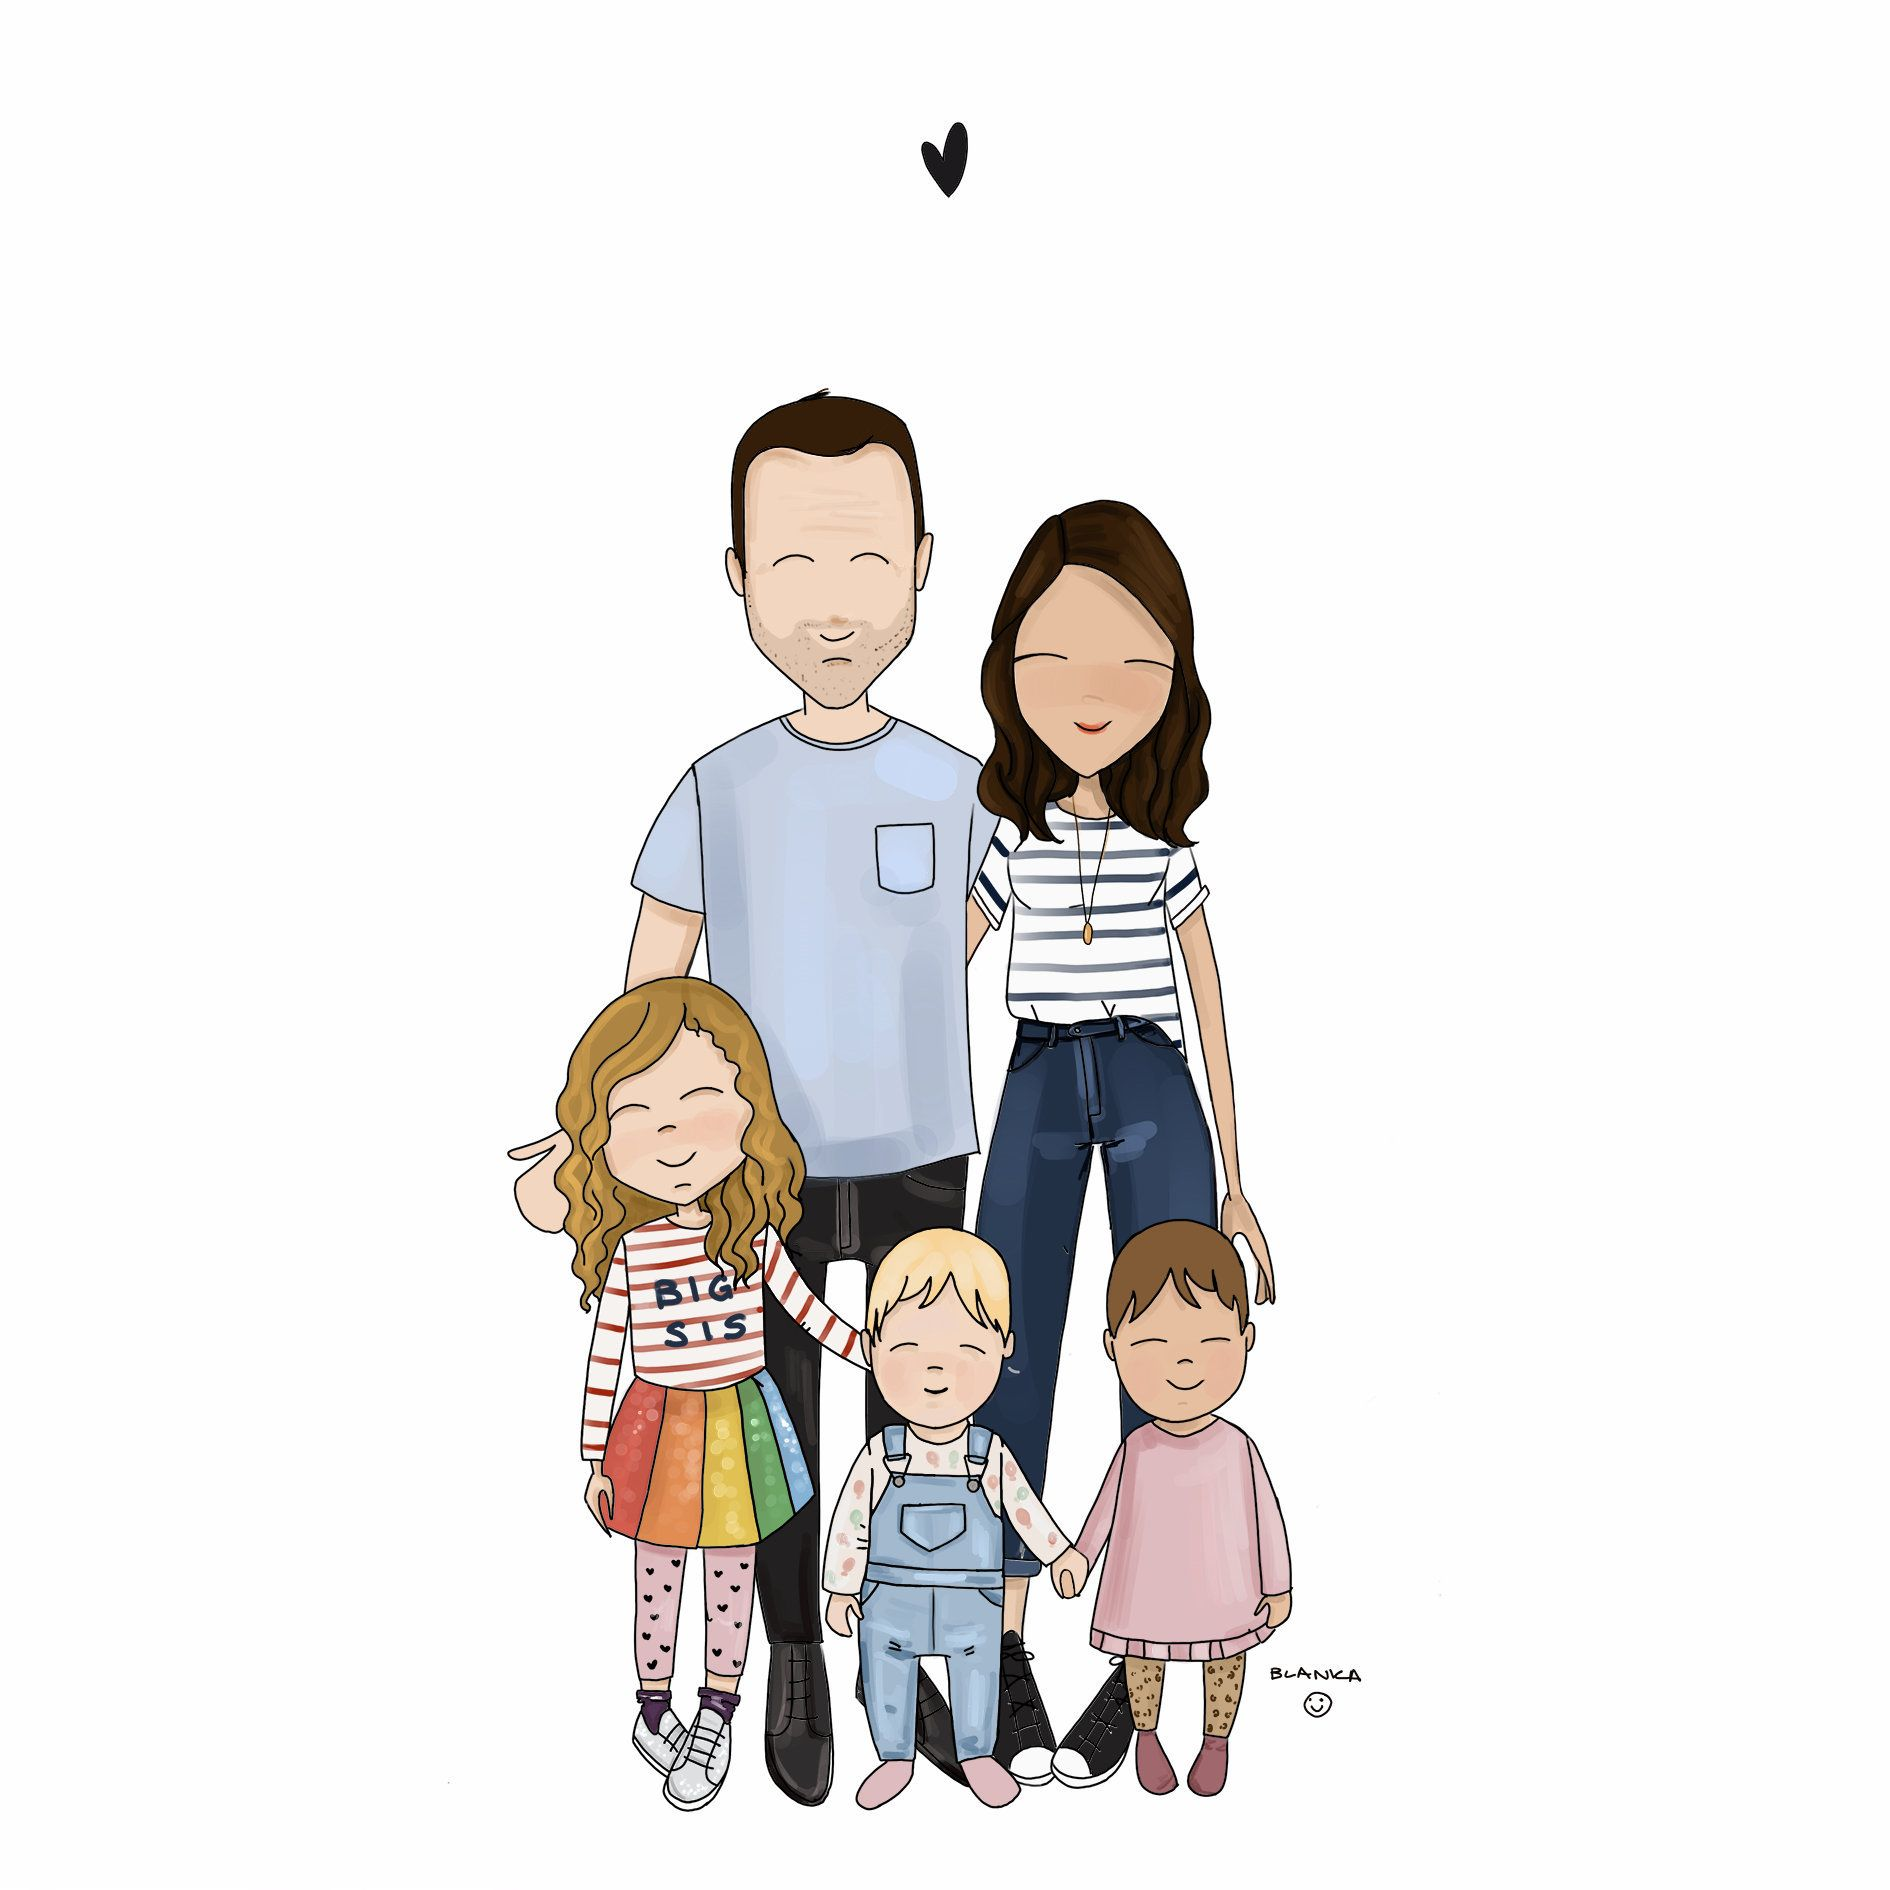 Family Portrait 5 People Illustrated Family Portrait Bespoke Illustration Custom Portrait Illustrated Family Portrait Custom Illustrated Family Portrait Family Illustration